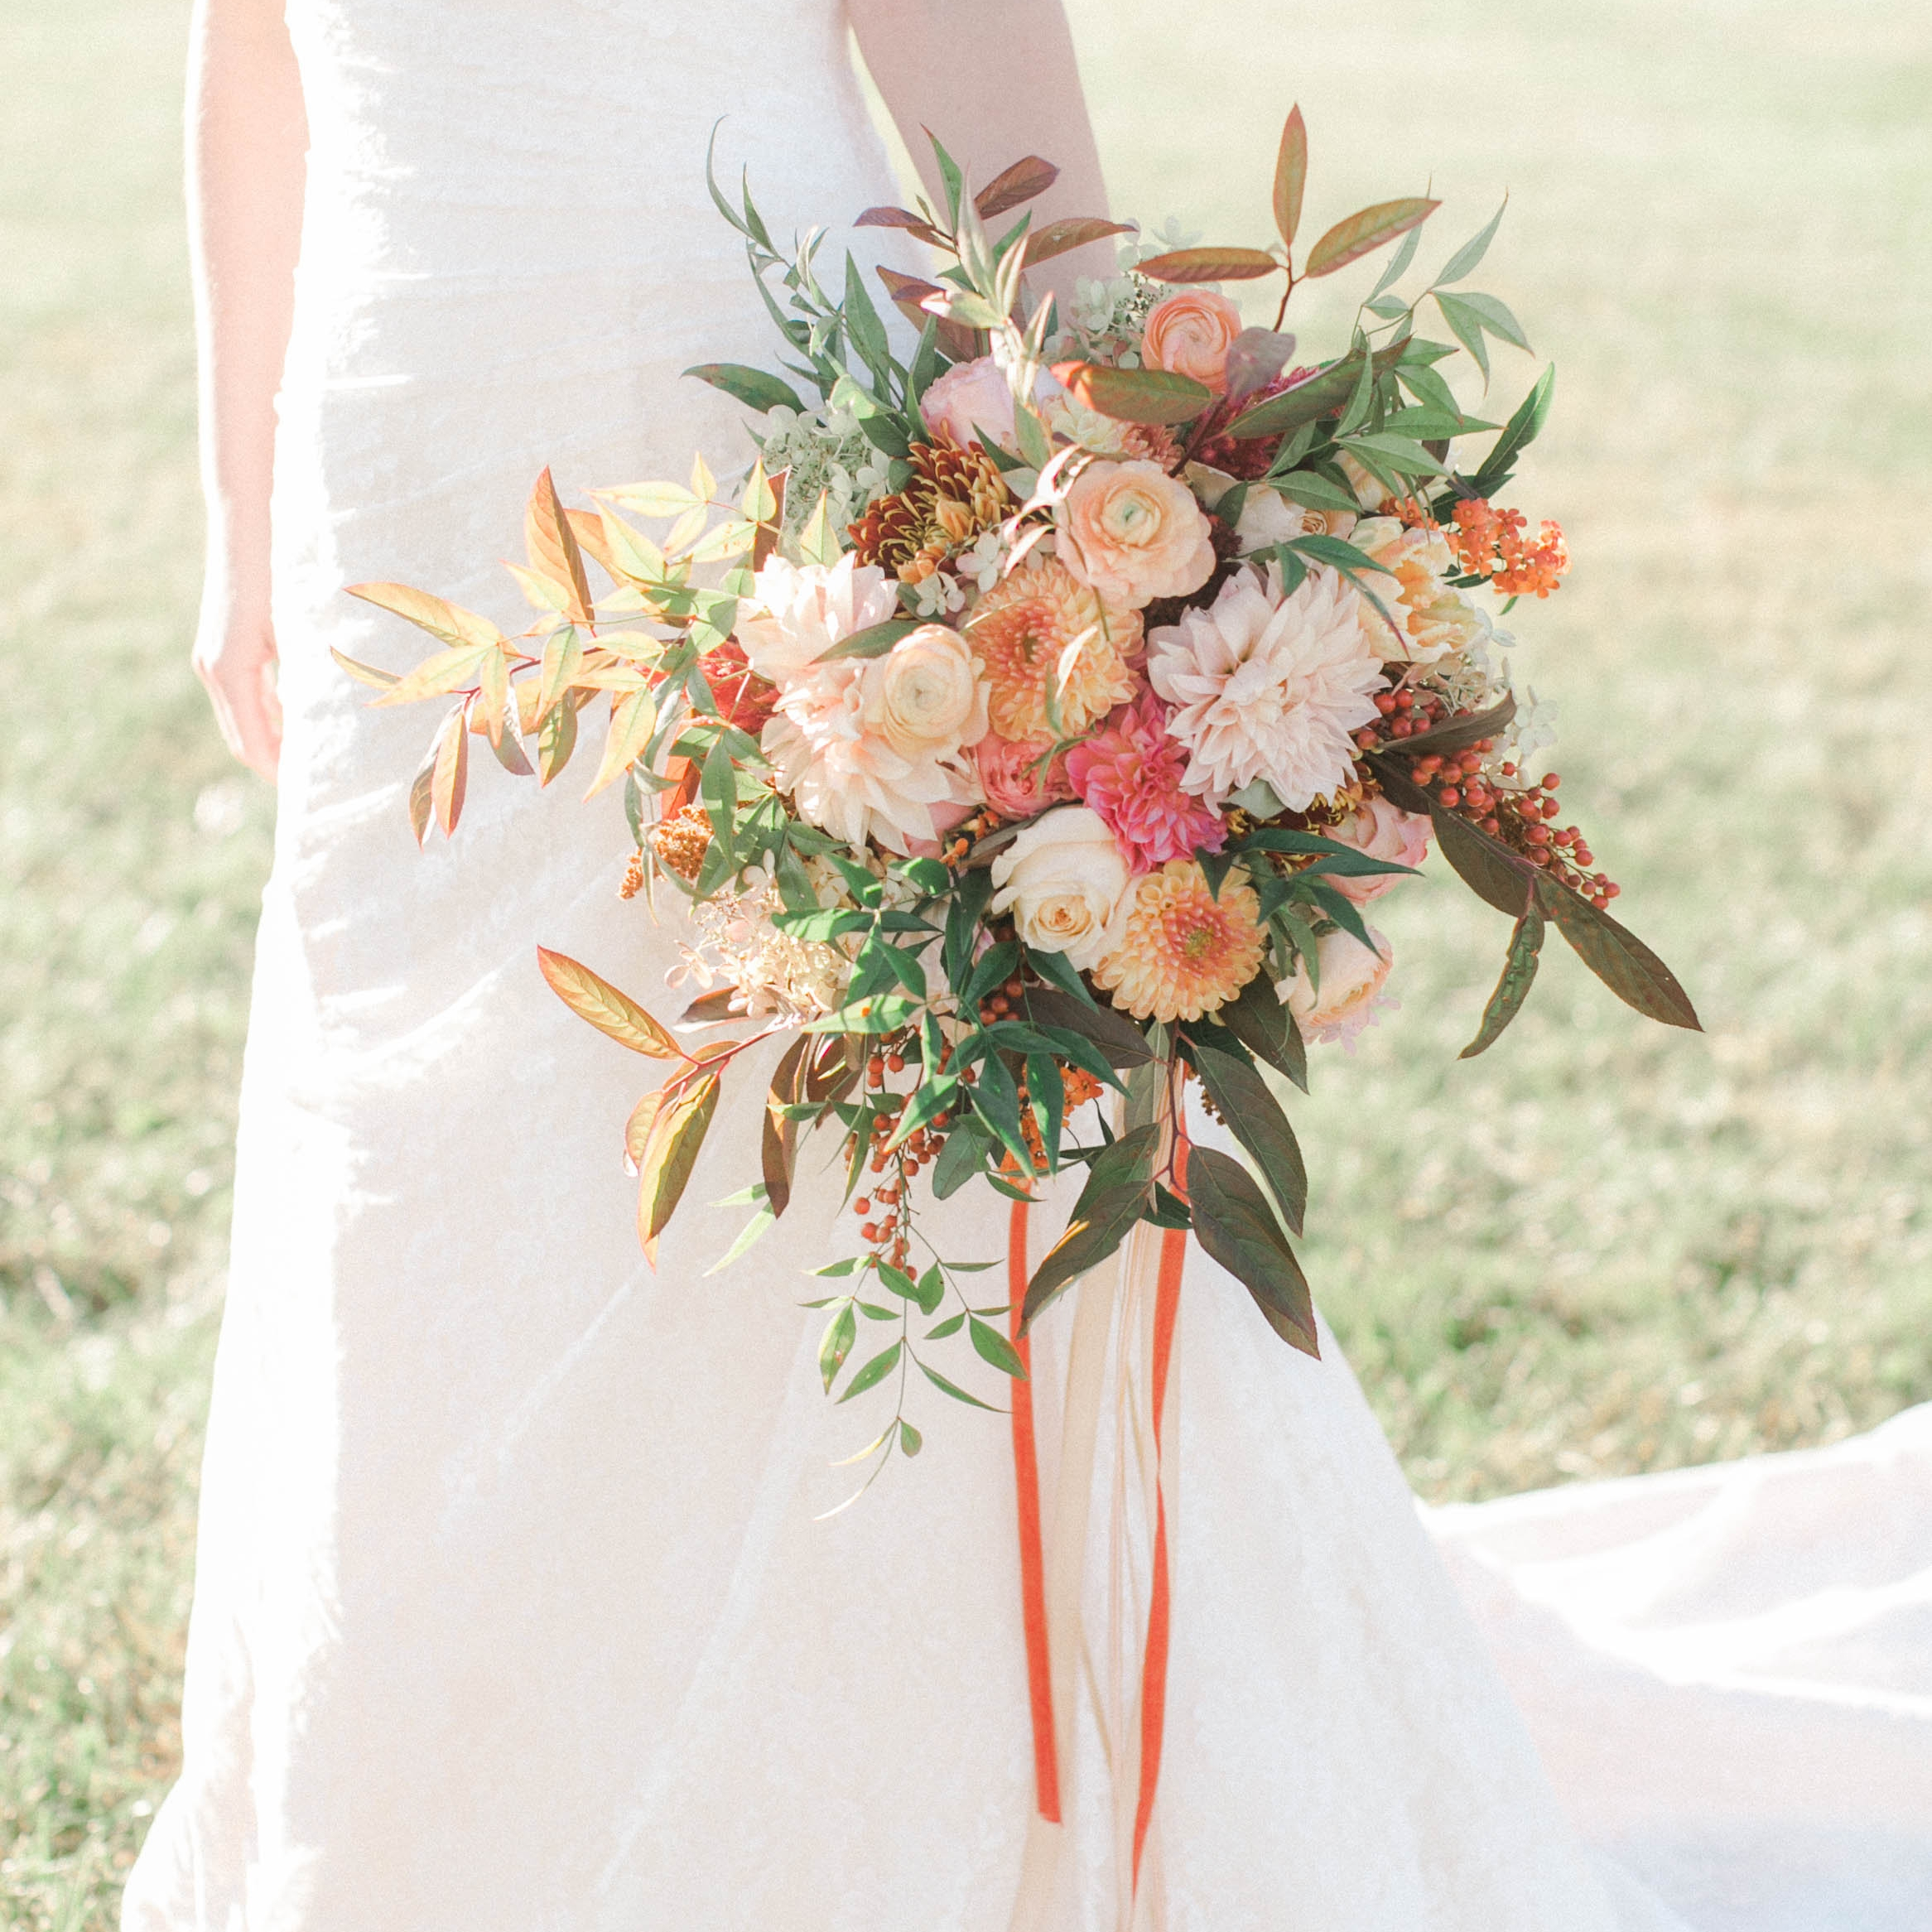 Southern Blooms - $$-$$$Central VAPHOTO | Jillian Michelle Photography